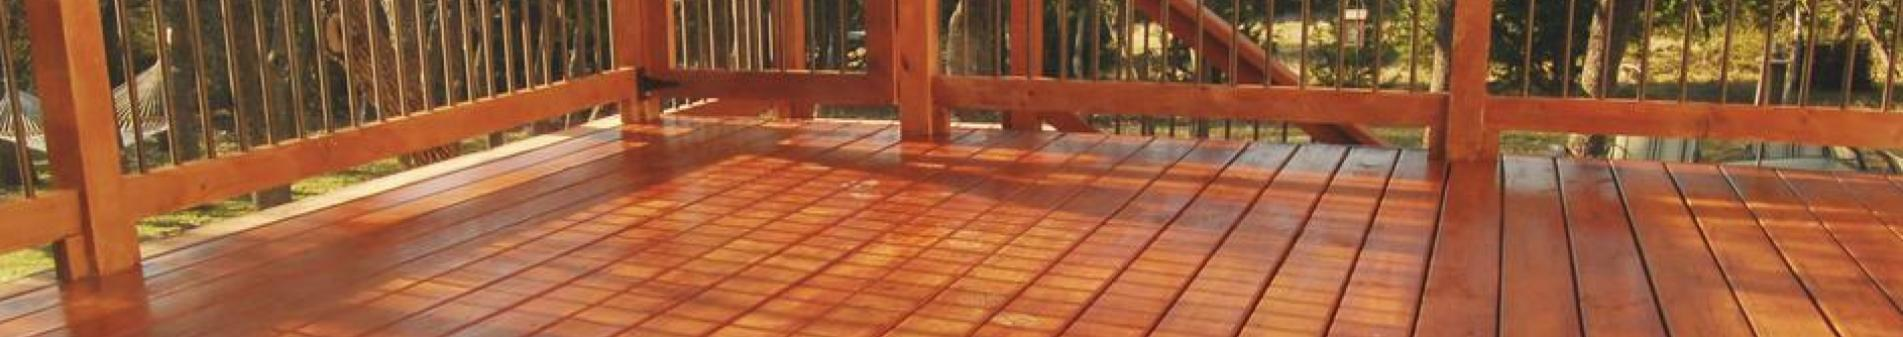 deck-staining-fairfield-ct